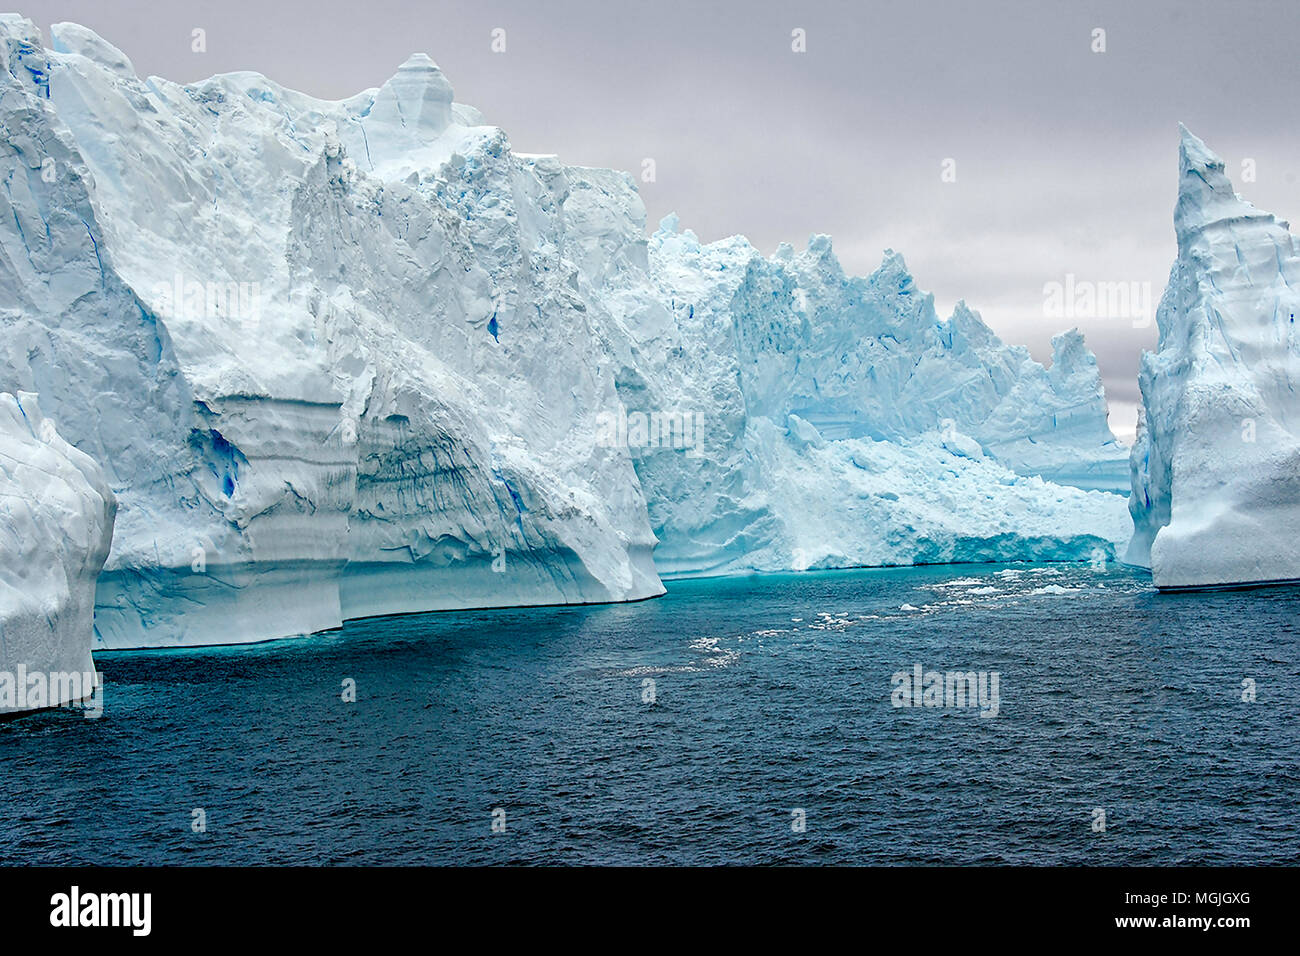 Icebergs in Antarctica as seen from a zodiac boat. - Stock Image